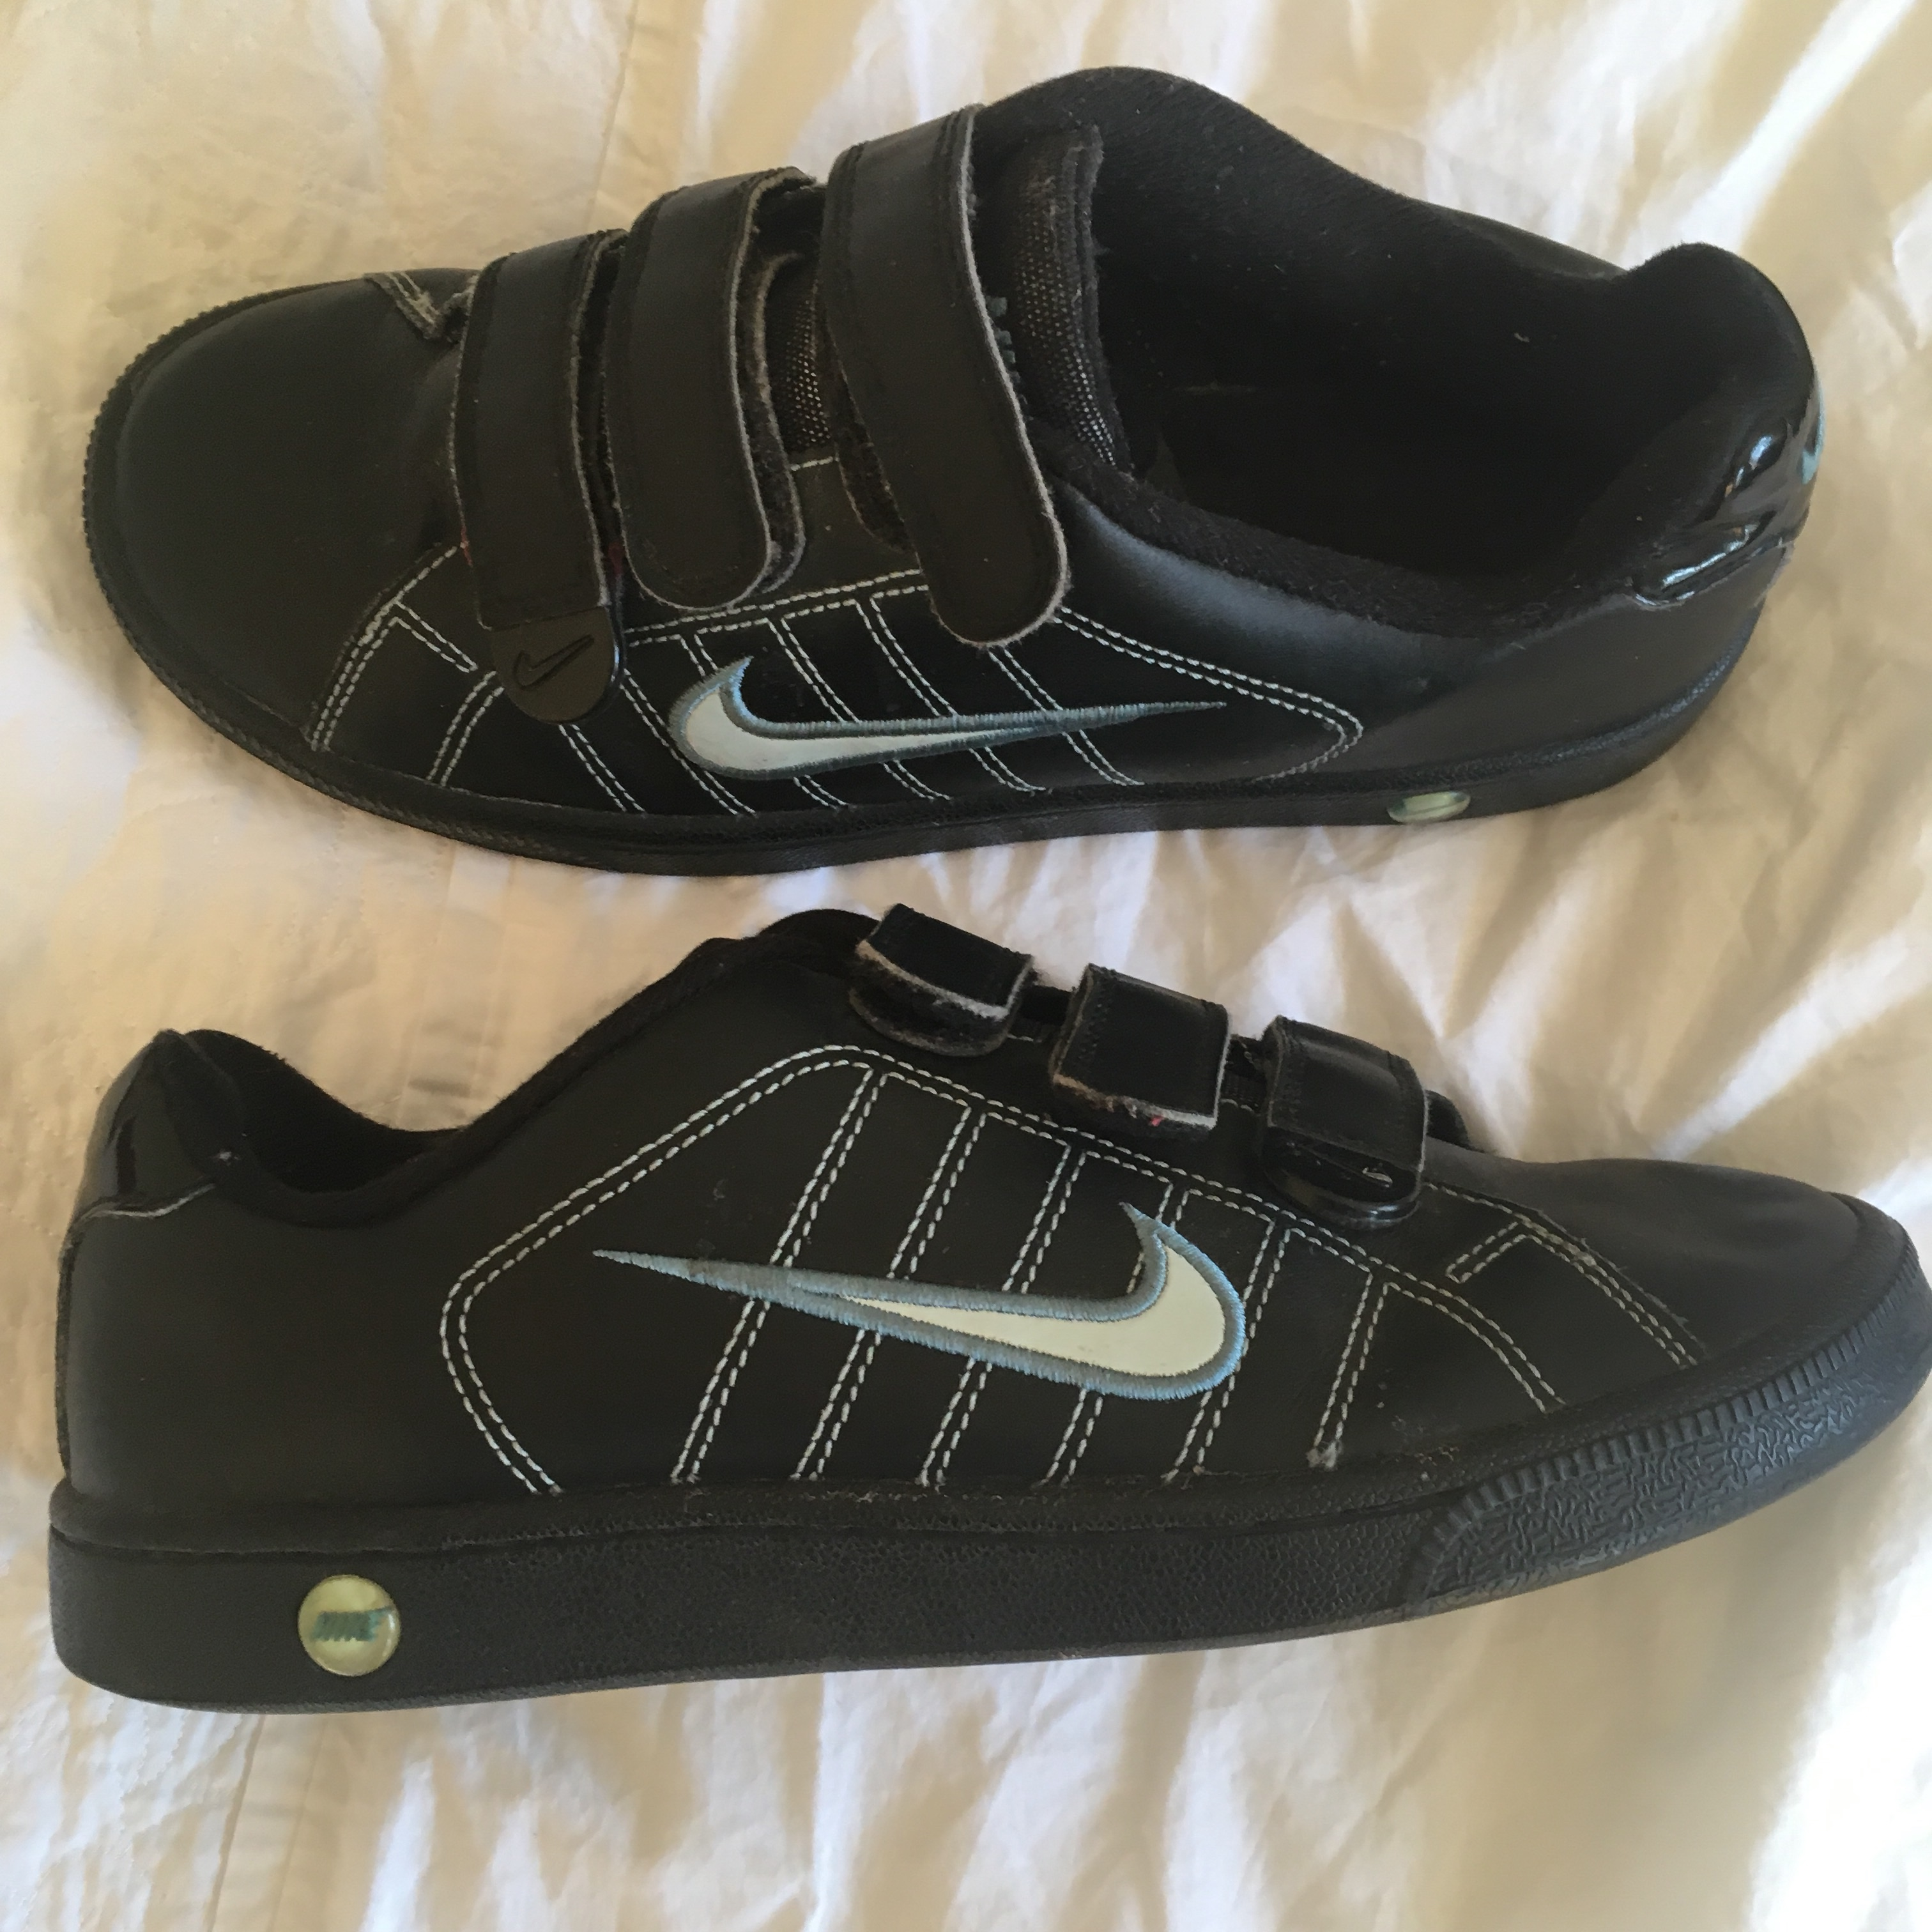 Black Nike Trainers with Velcro straps